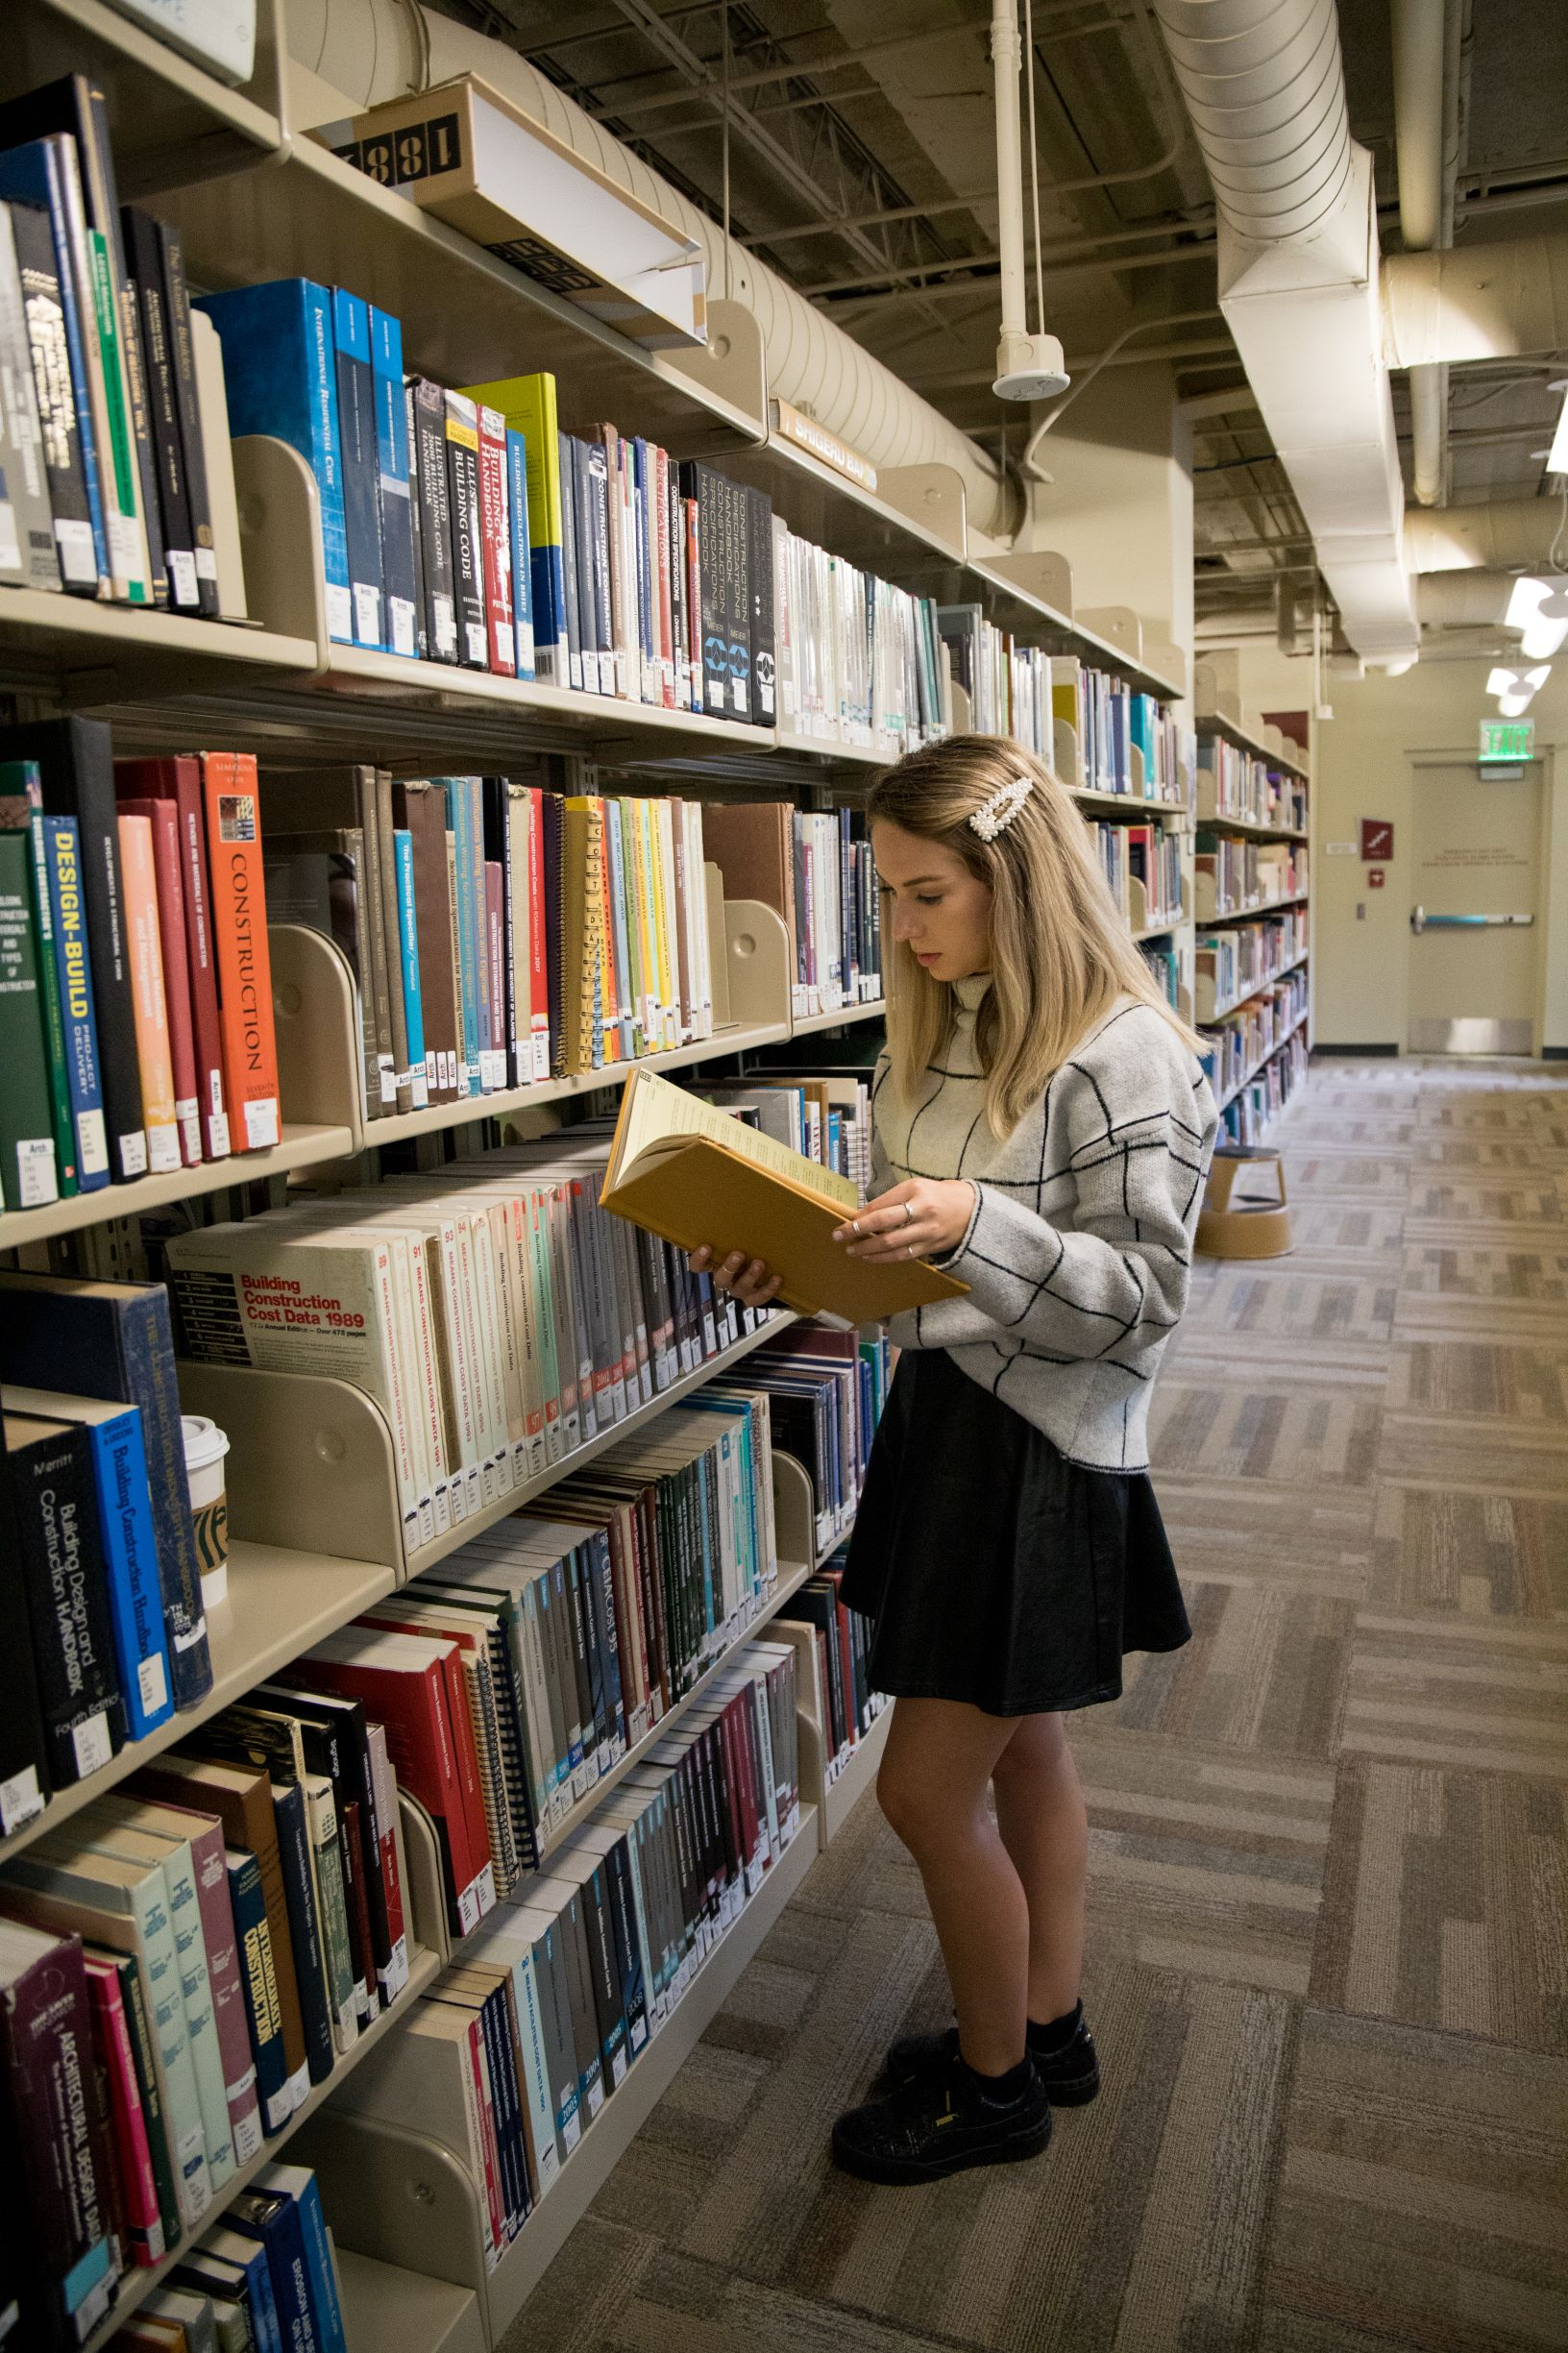 A student looking at a book next to a bookshelf.